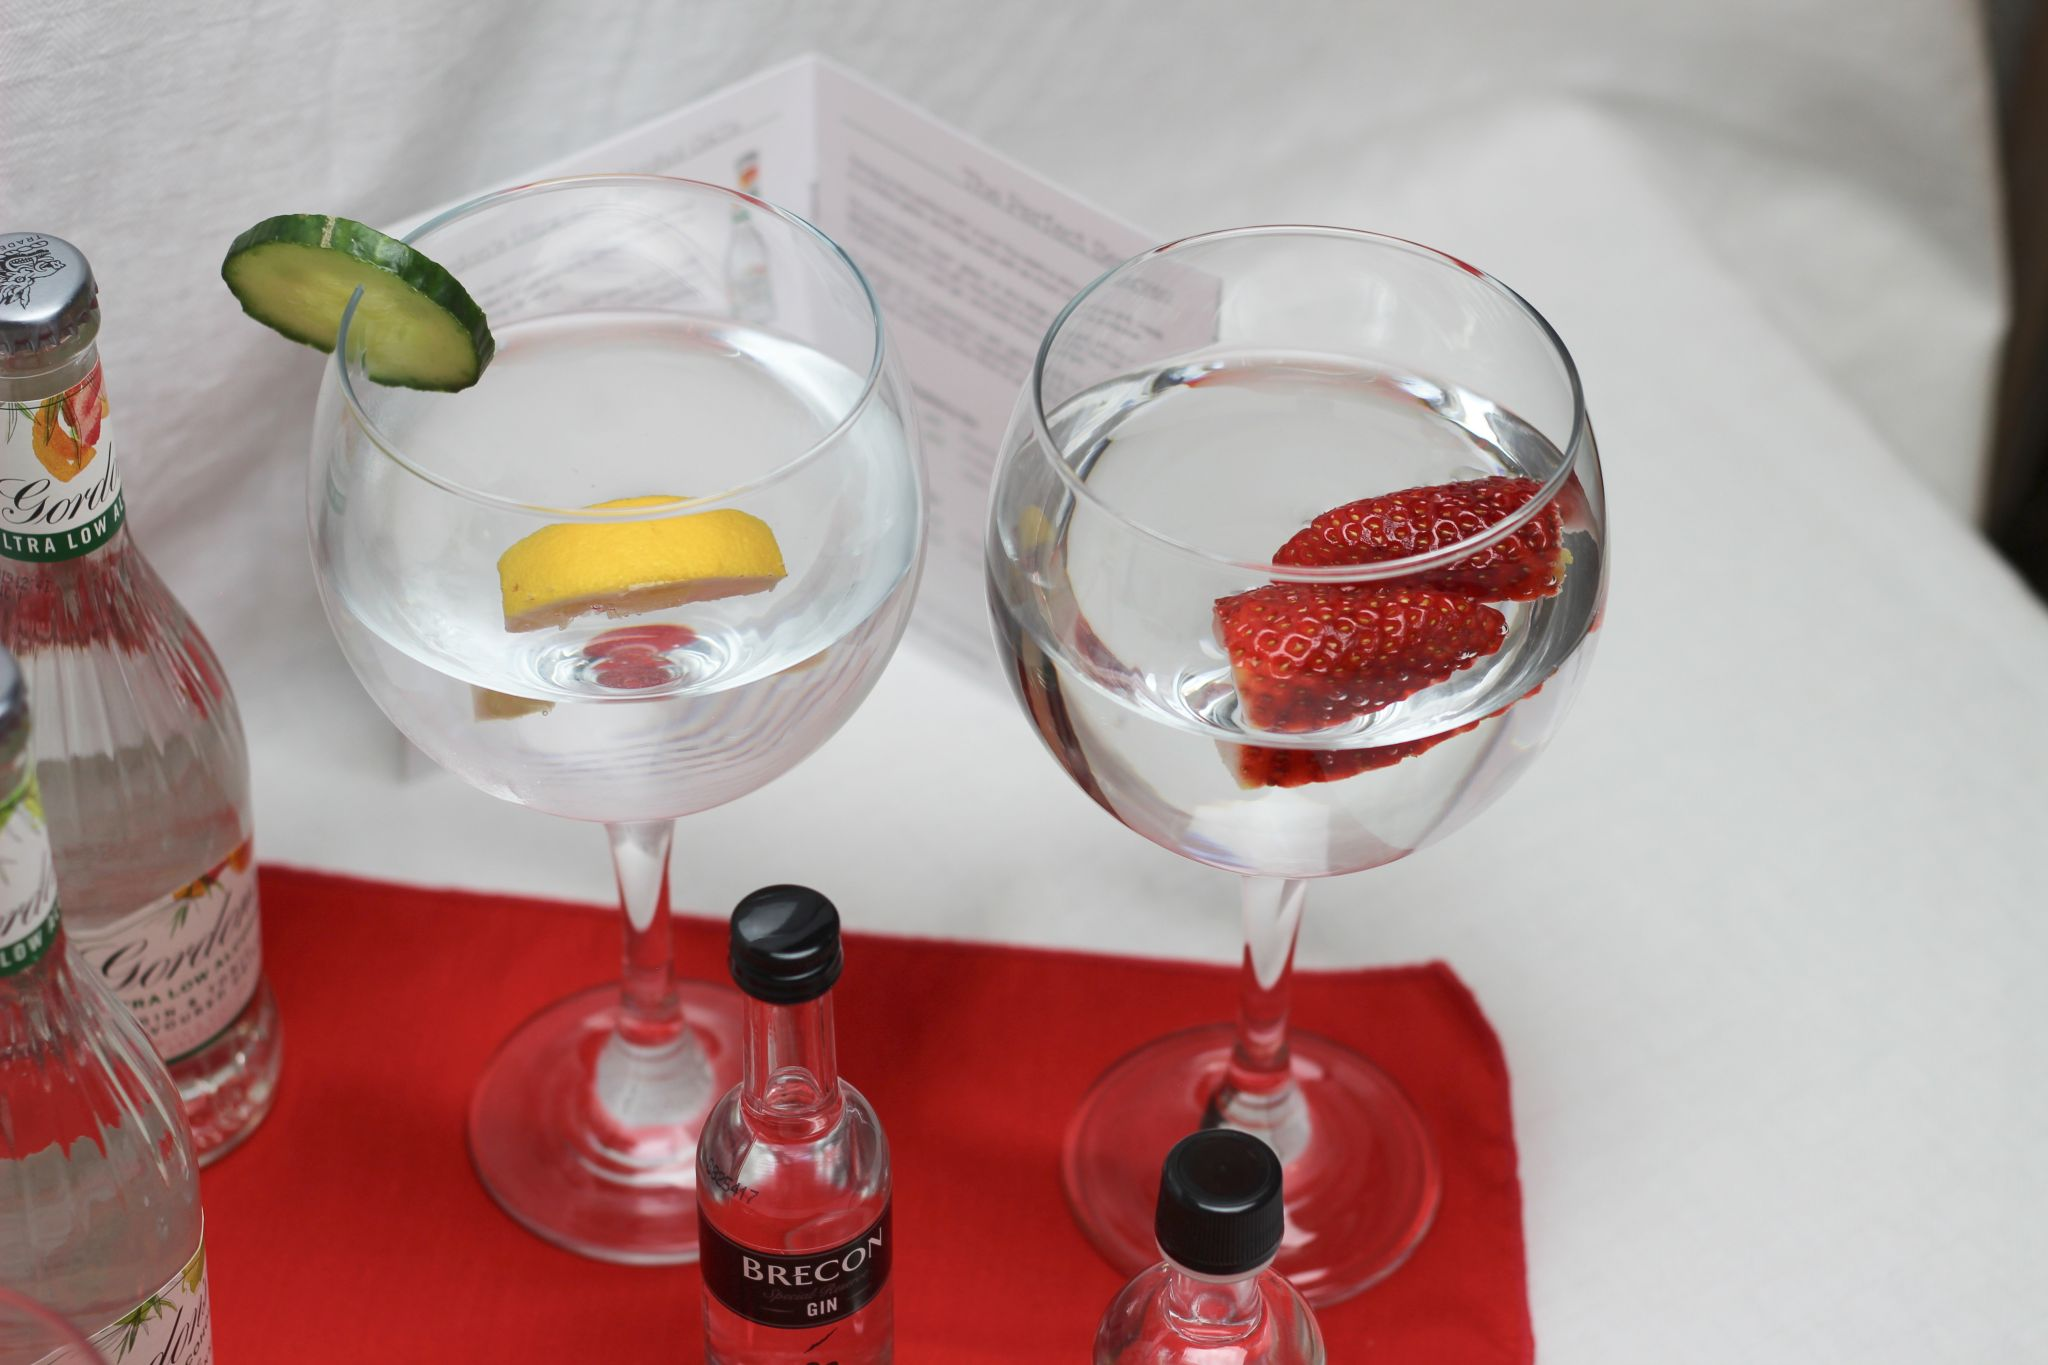 ILoveGin DryGINuary Box - Two gin glasses, one with a lemon wedge, one with strawberries